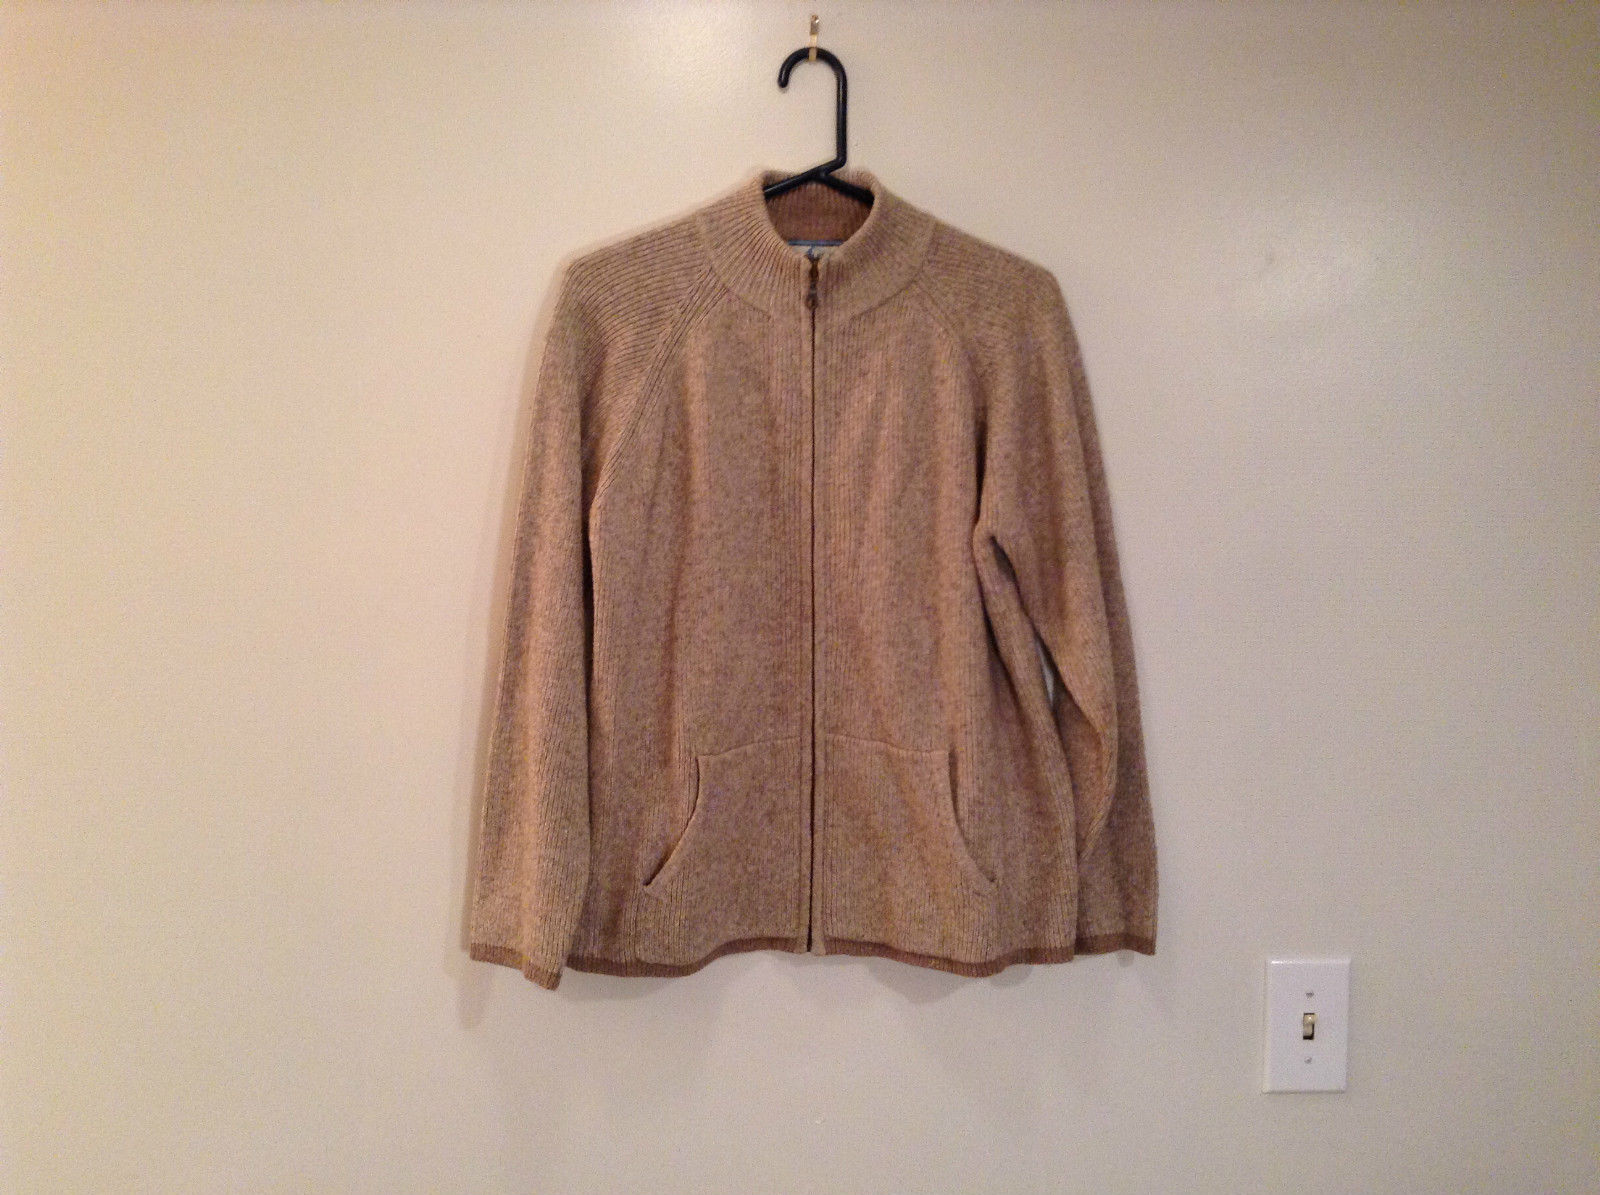 Pendleton Cream Tan Darker Trim Front Zipper Turtleneck Collar Sweater Size XL